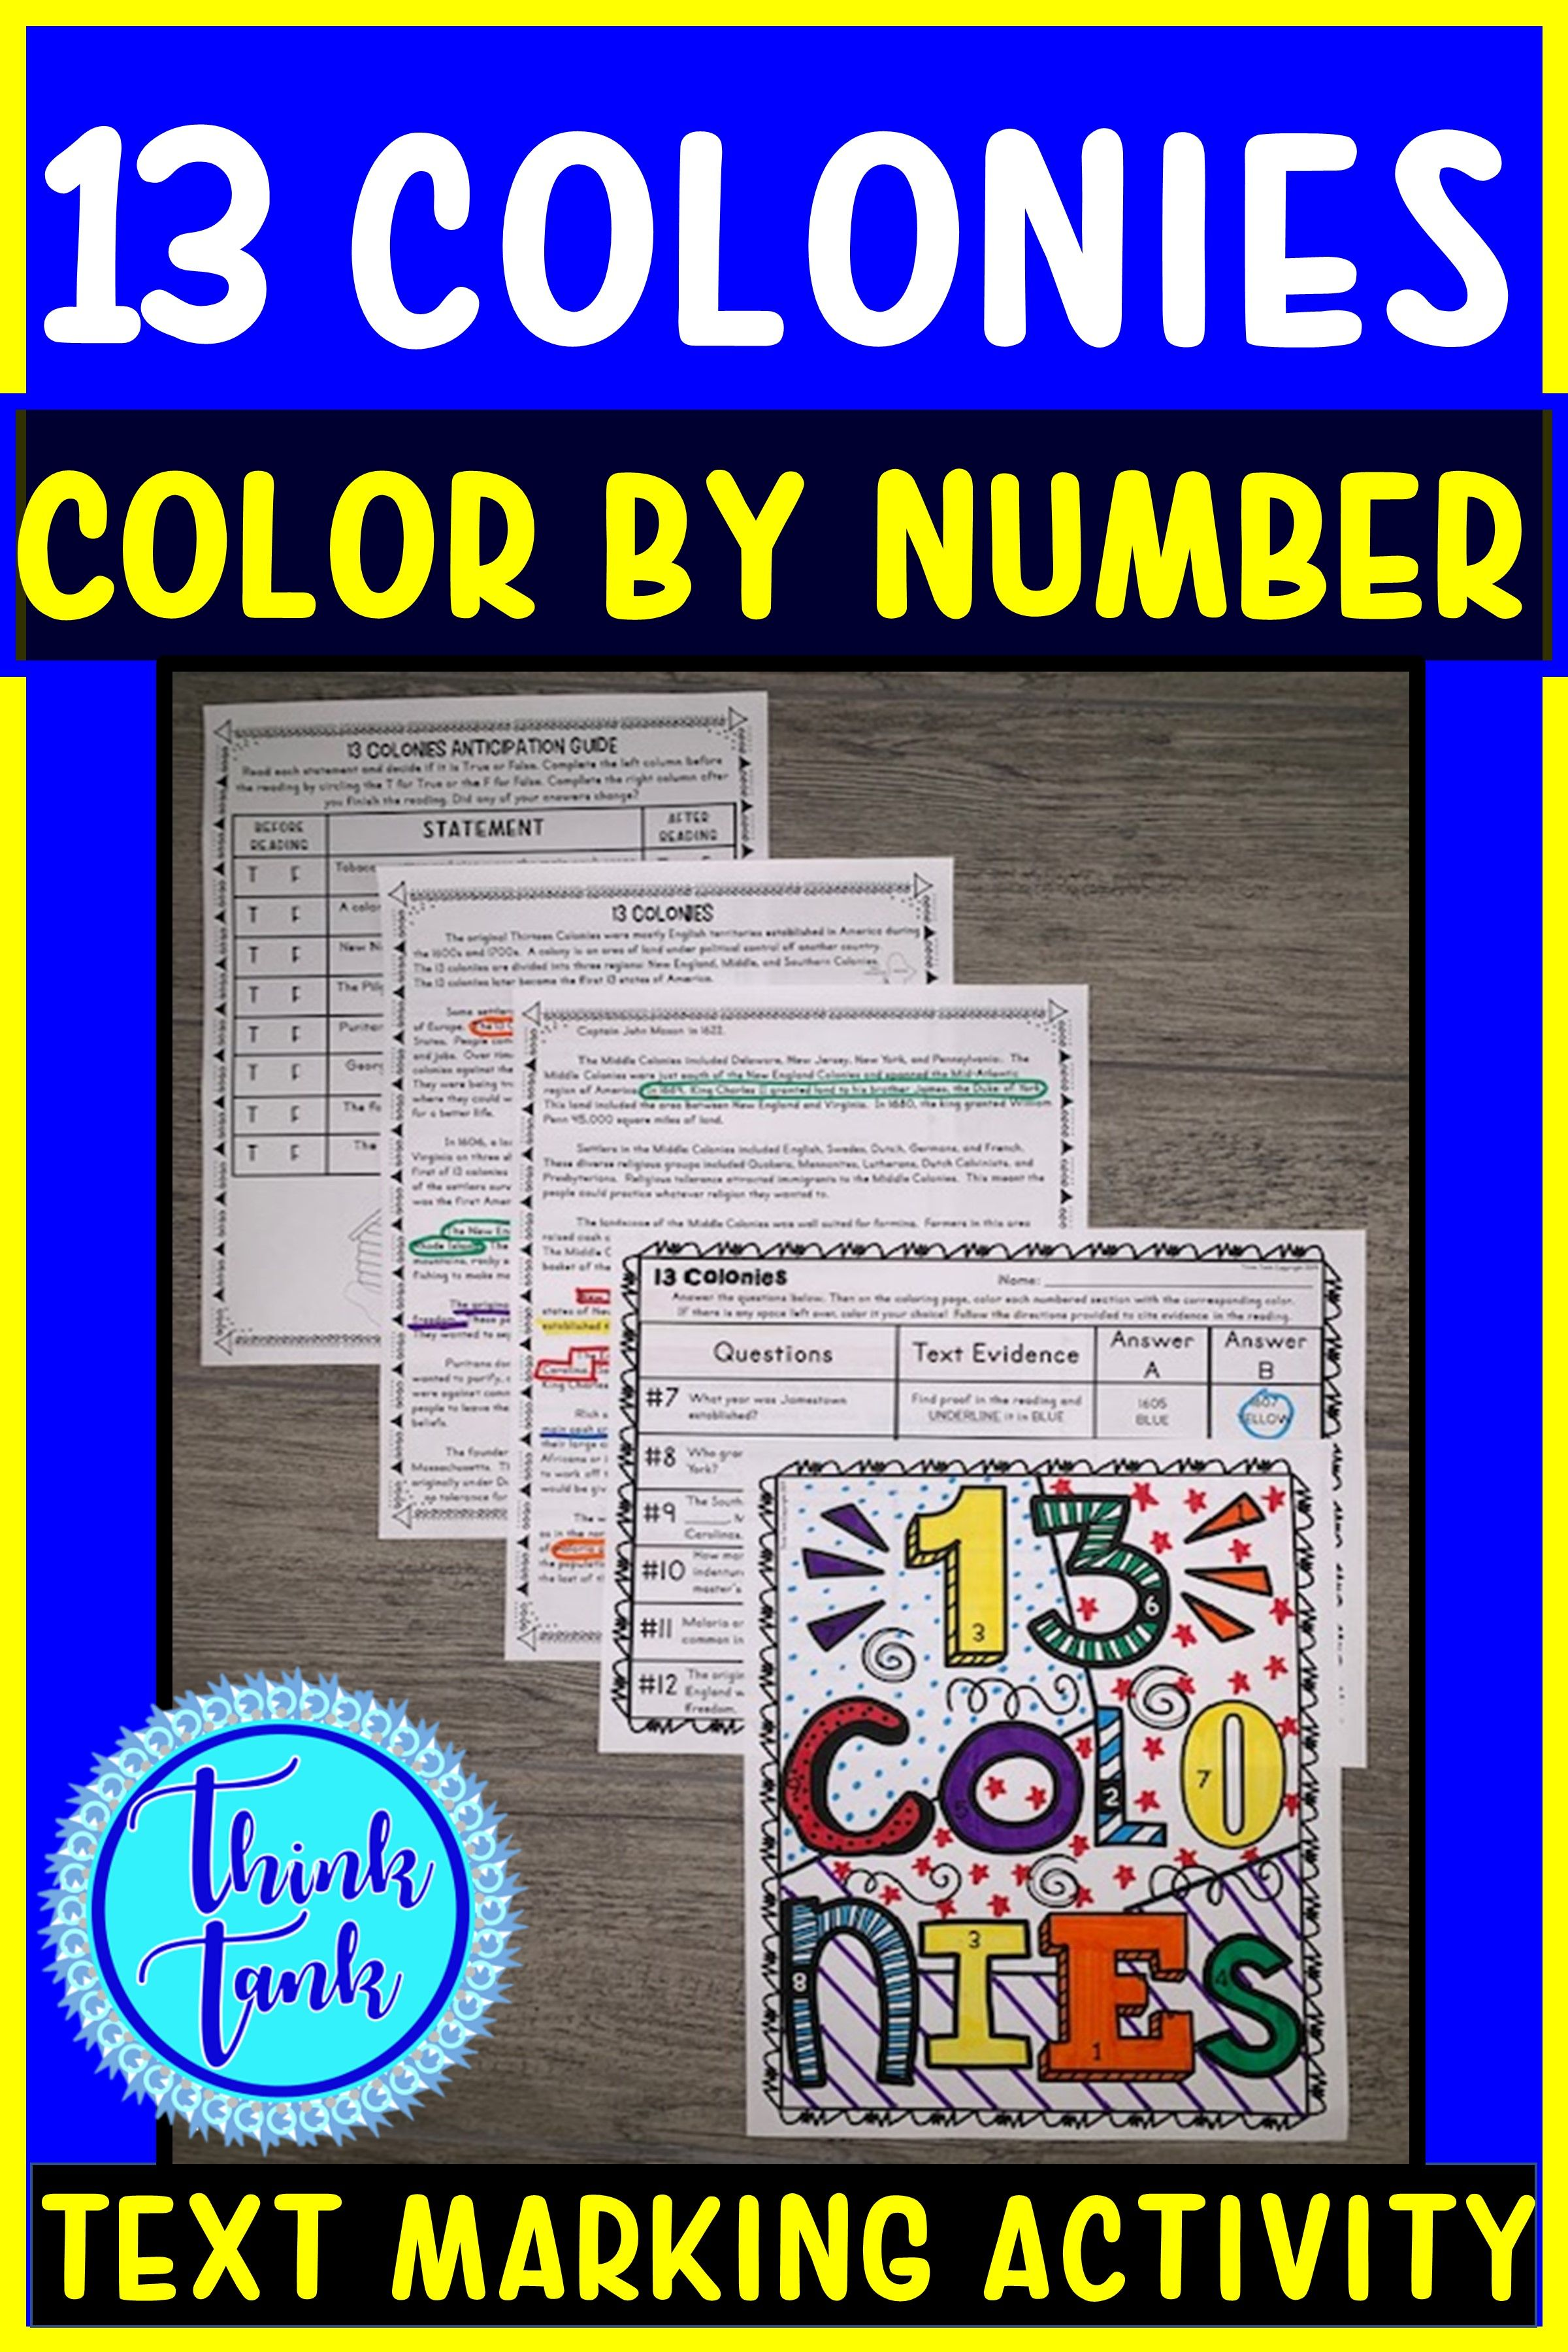 13 Colonies Color By Number Activity With Reading Passage